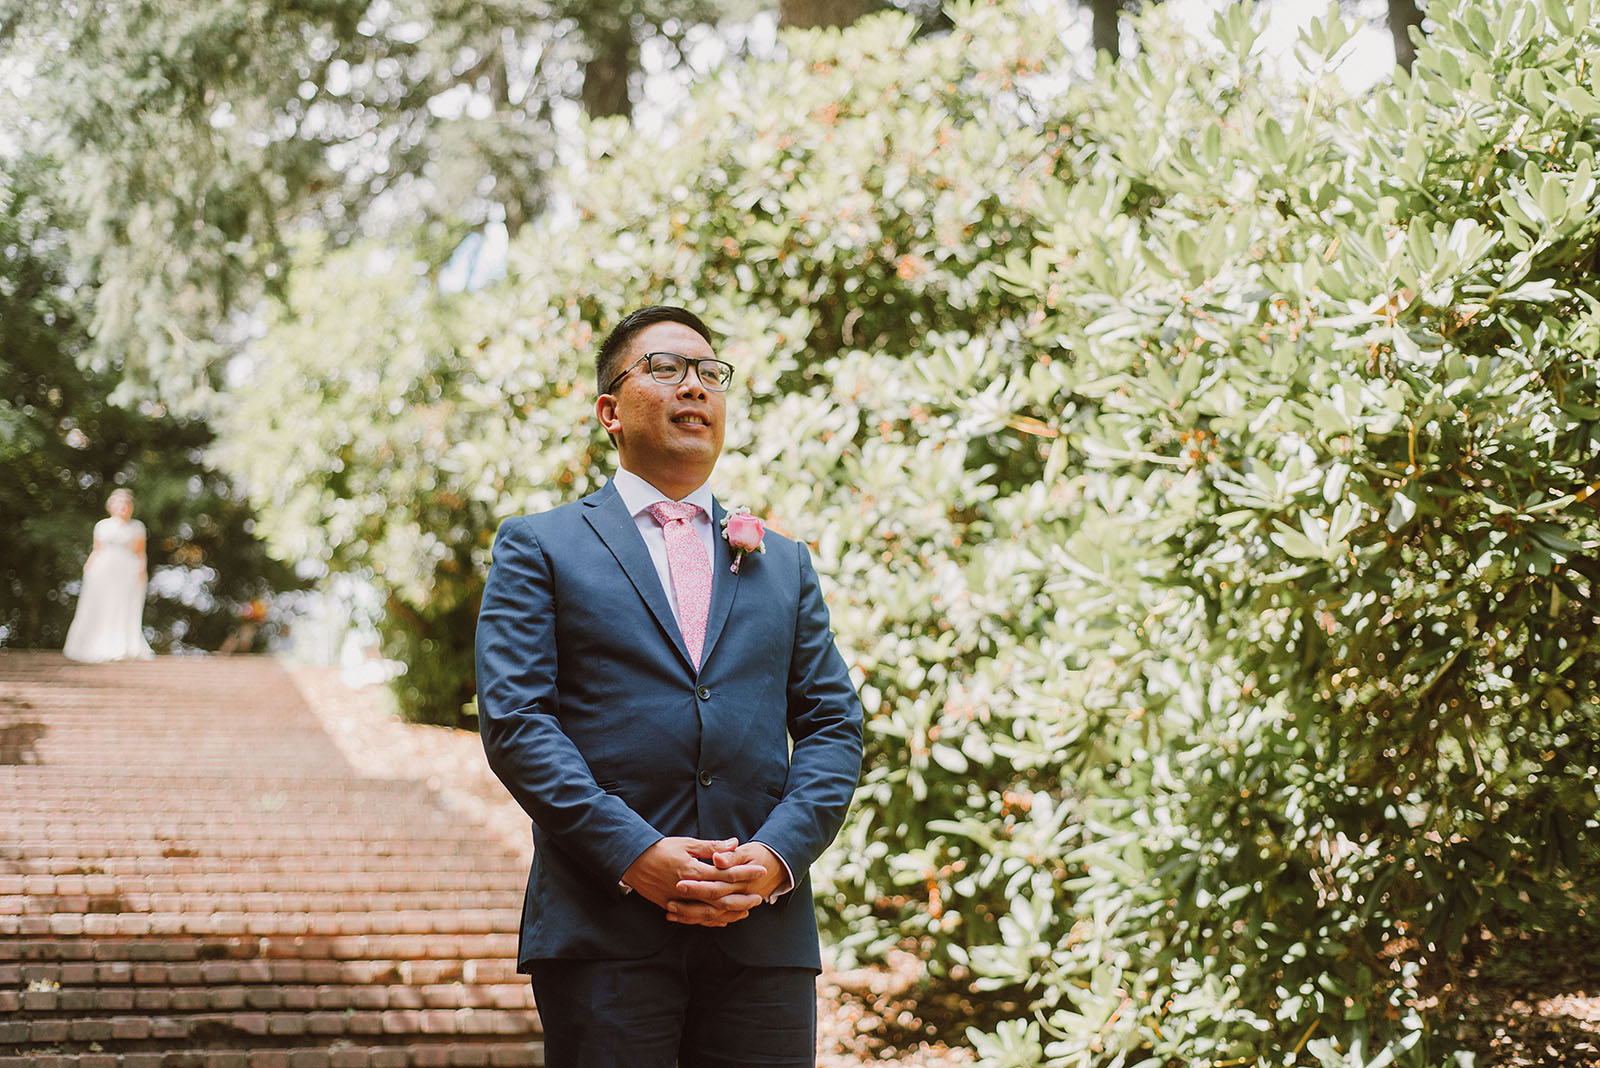 First Look in Laurelhurst Park | Downtown Portland Elopement